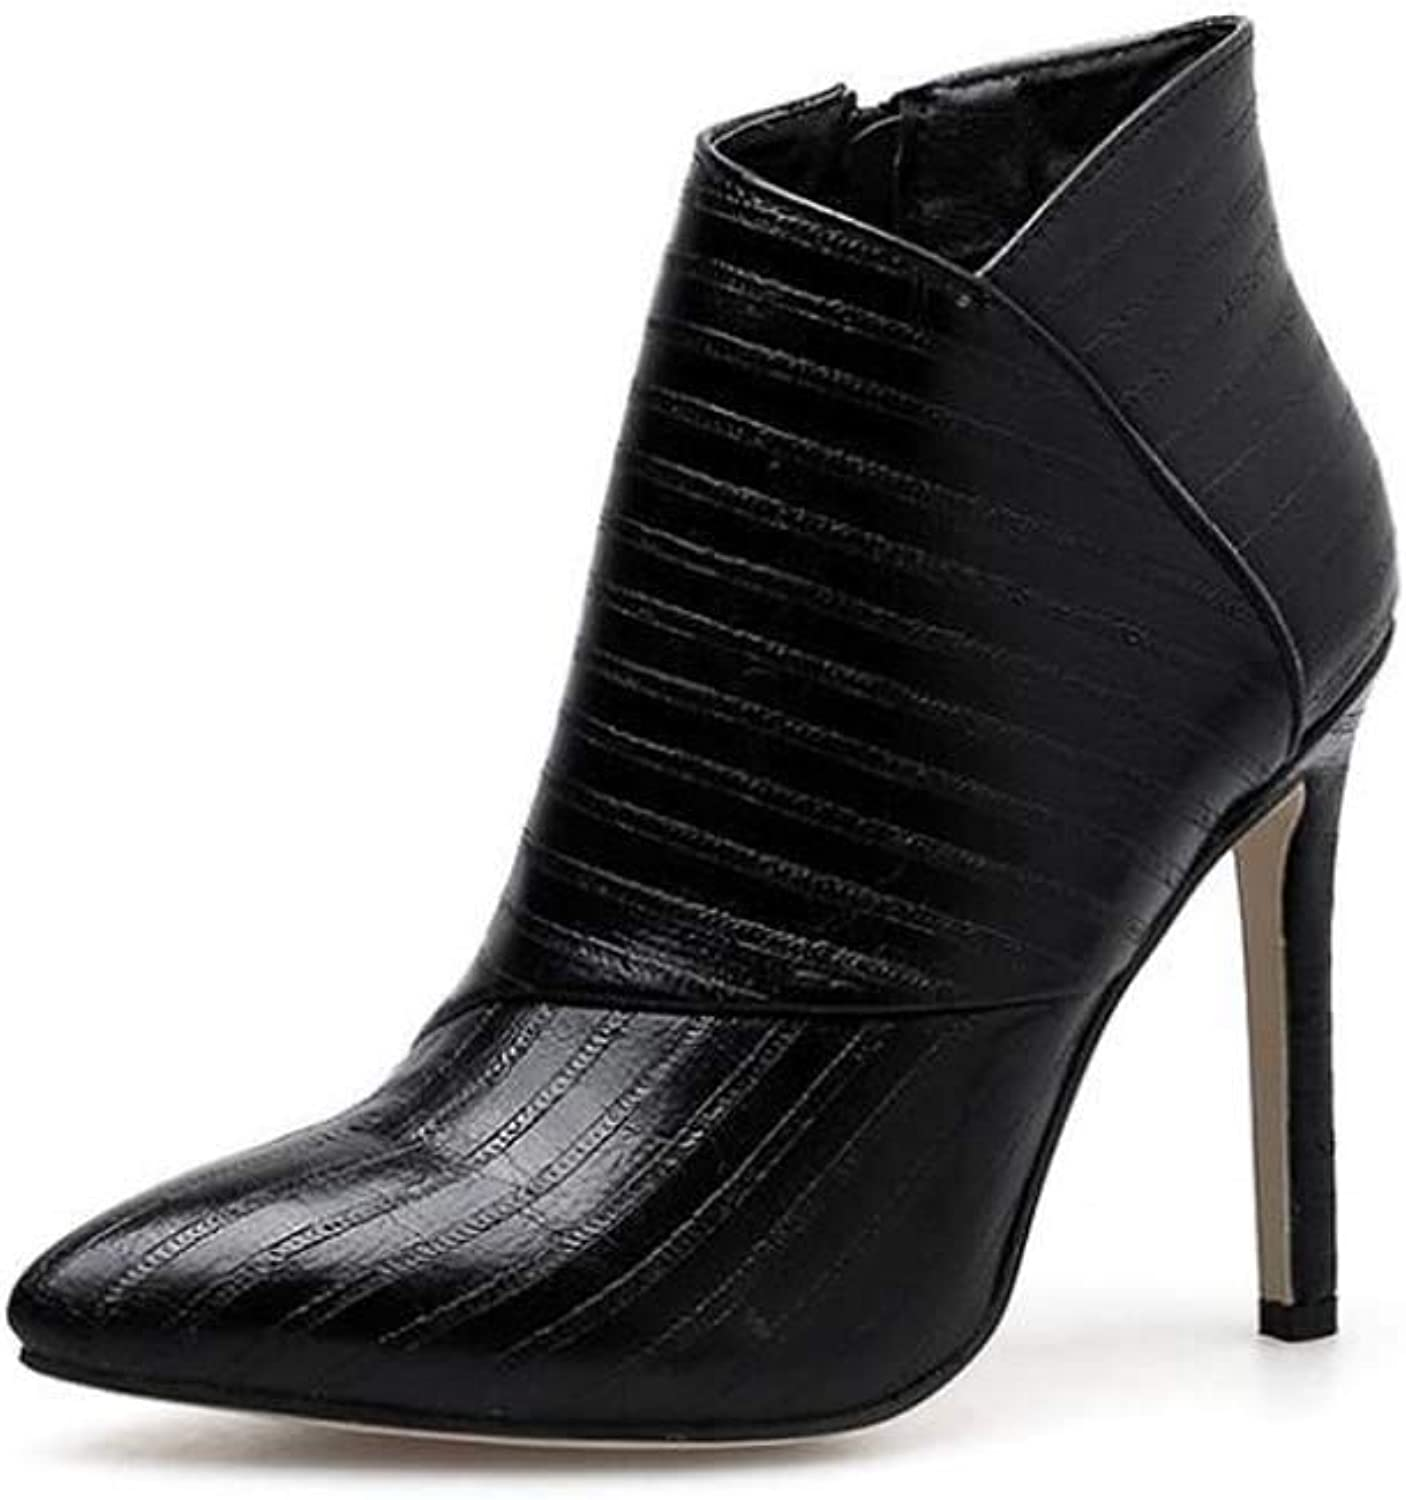 Women Sexy Ankle Bootie 11Cm Stiletto Pointed Toe Zipper Martin Boot Embossed Pattern OL Court shoes EU Size 34-40